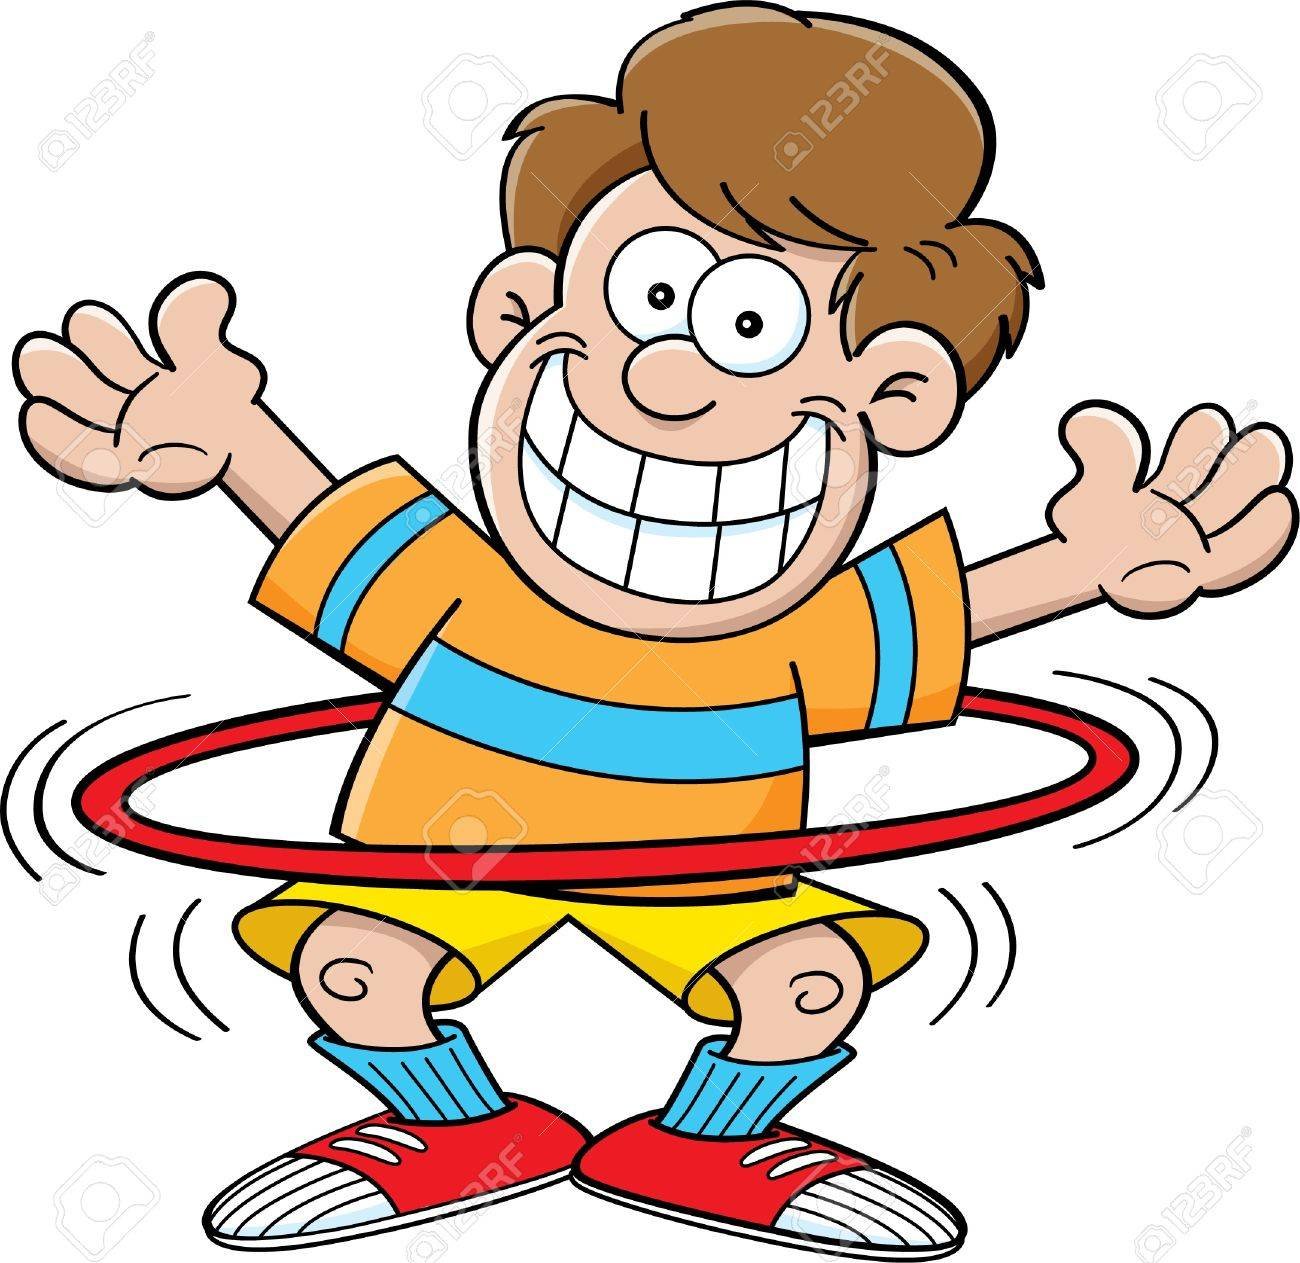 cartoon illustration of a boy playing with a hula hoop royalty free rh 123rf com hula hoop clipart black and white hula hoop pictures clip art